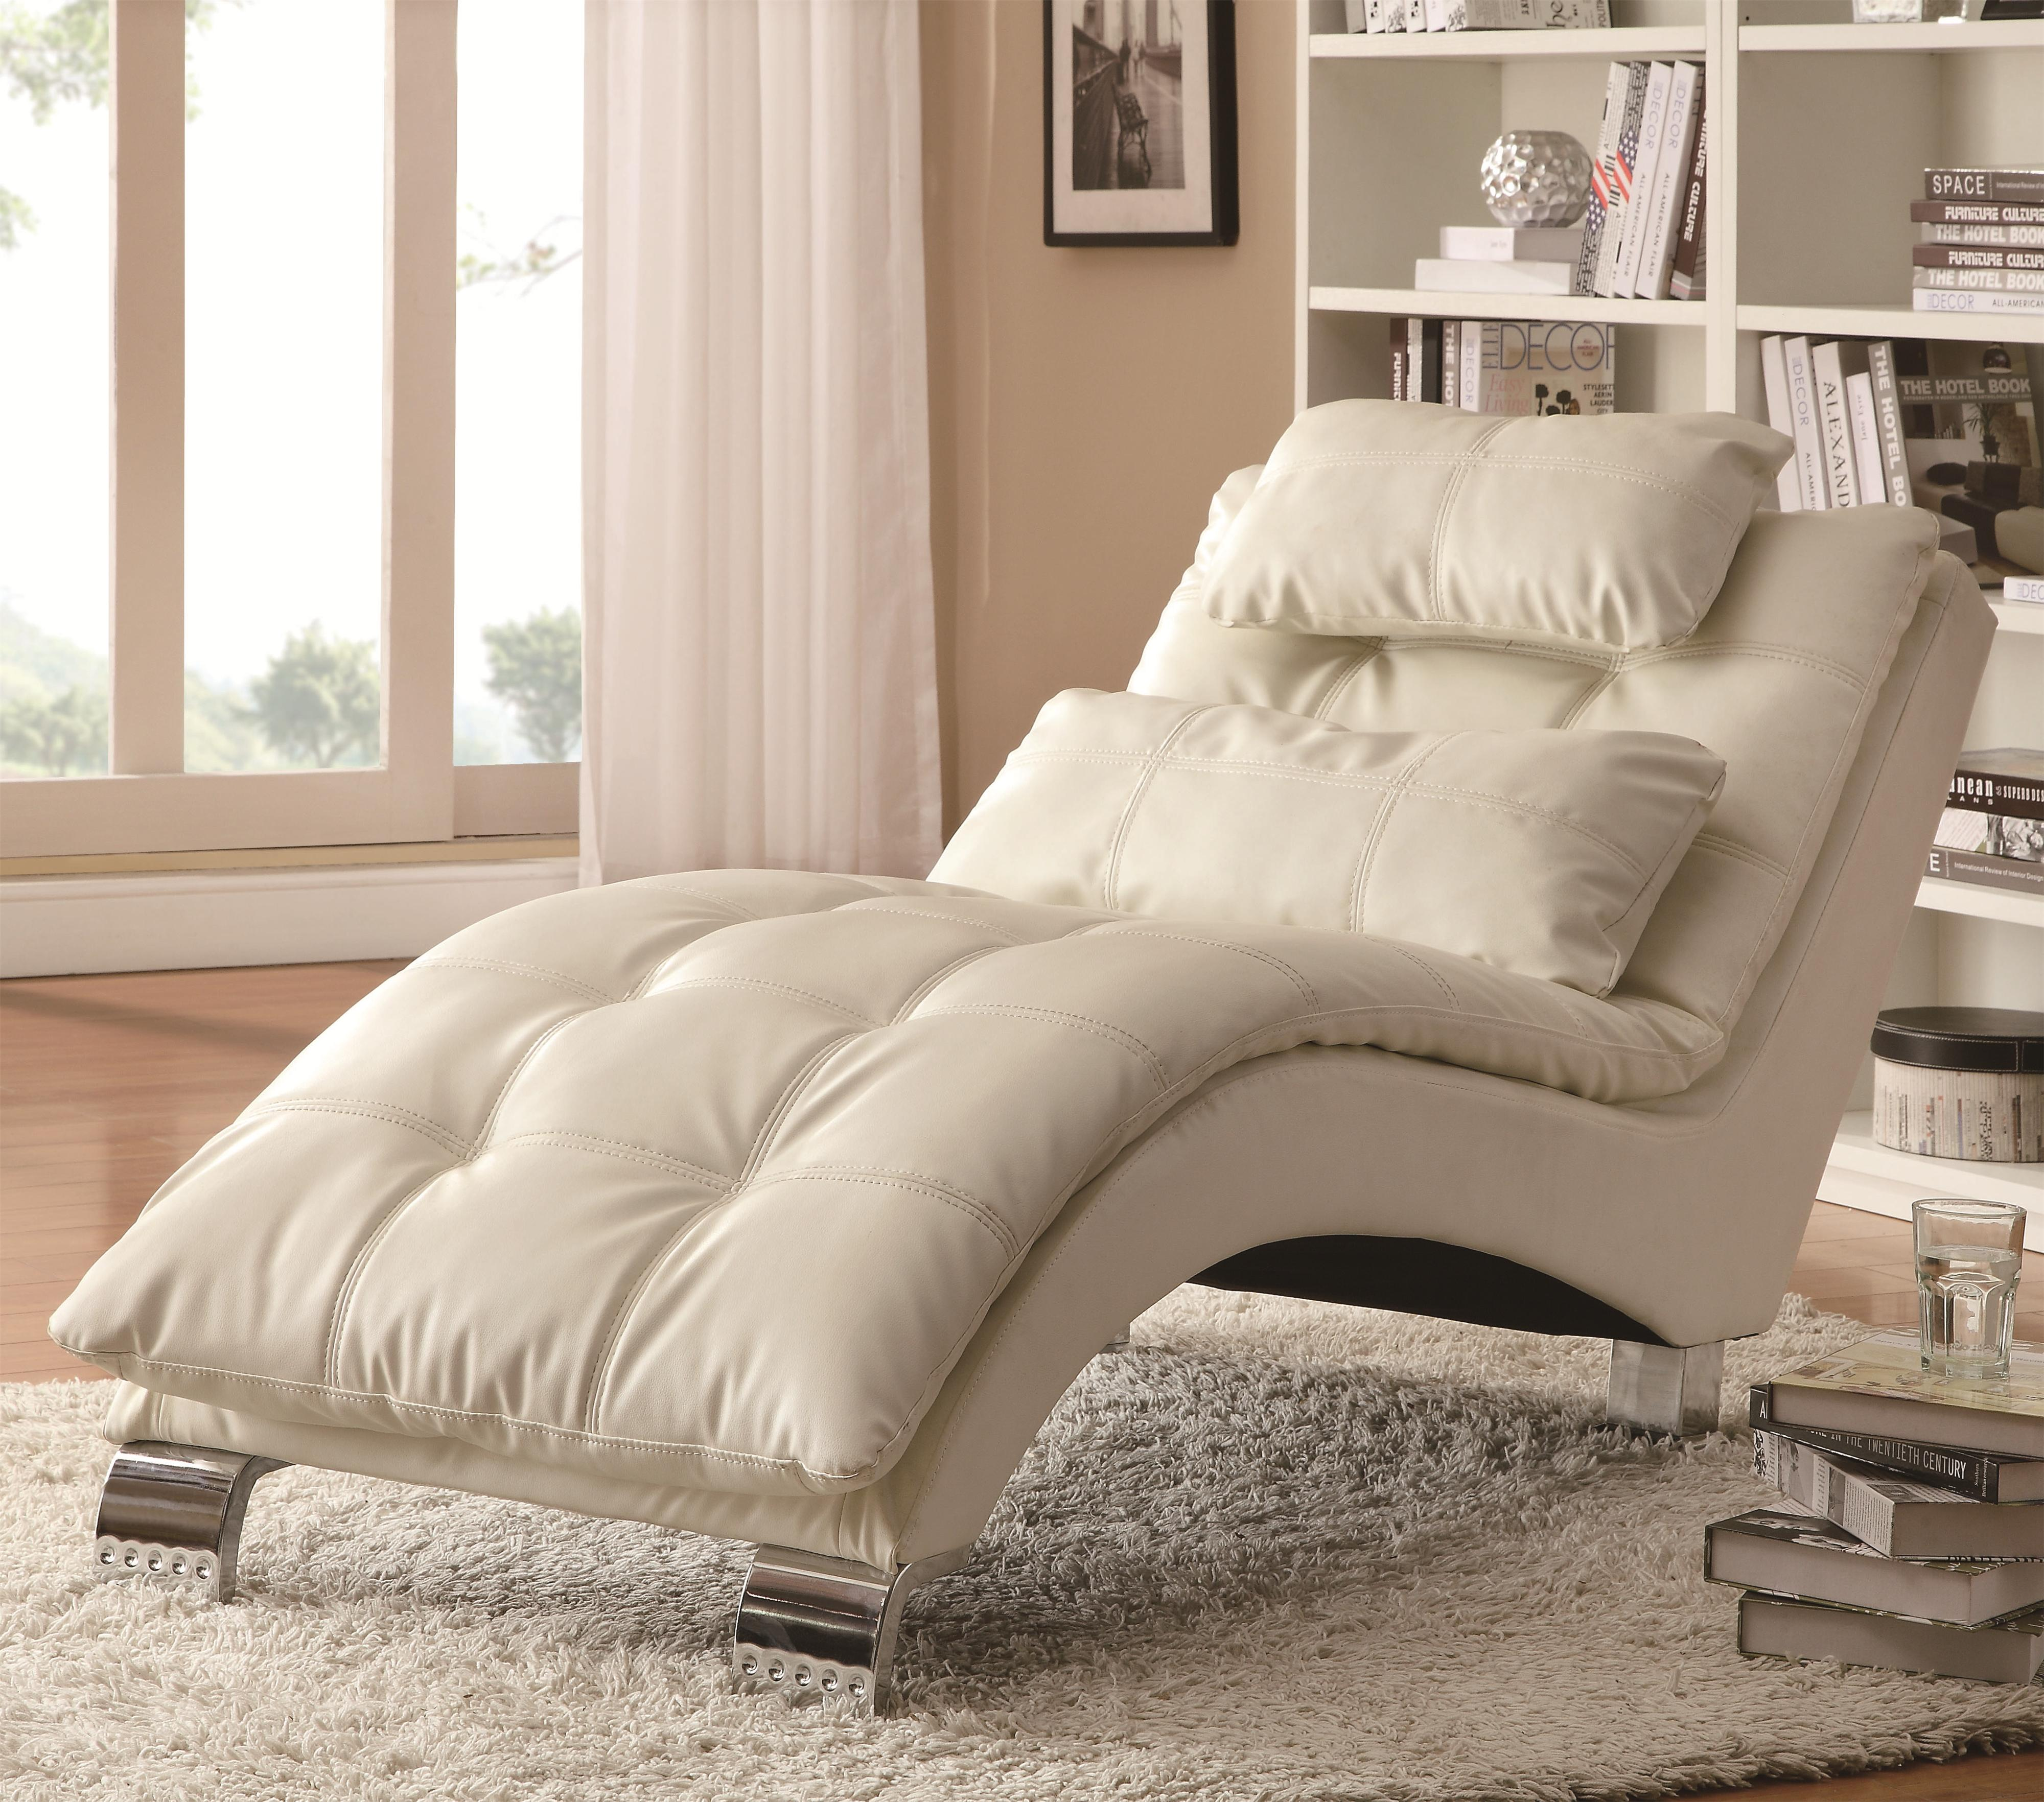 Faccent seating_550078-b2